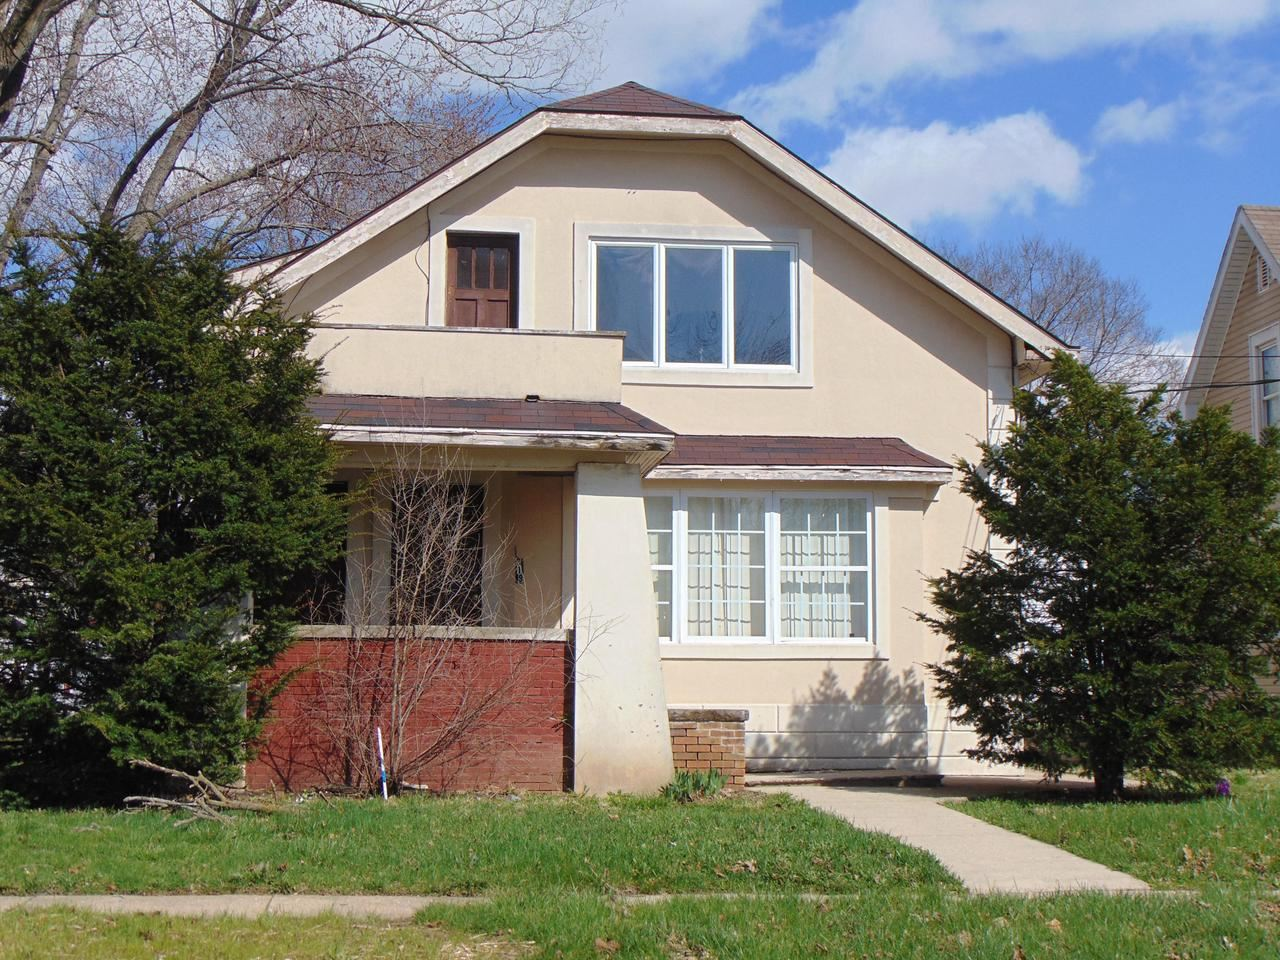 919 Lincoln Ave, Beloit, WI 53511 - #: 365759